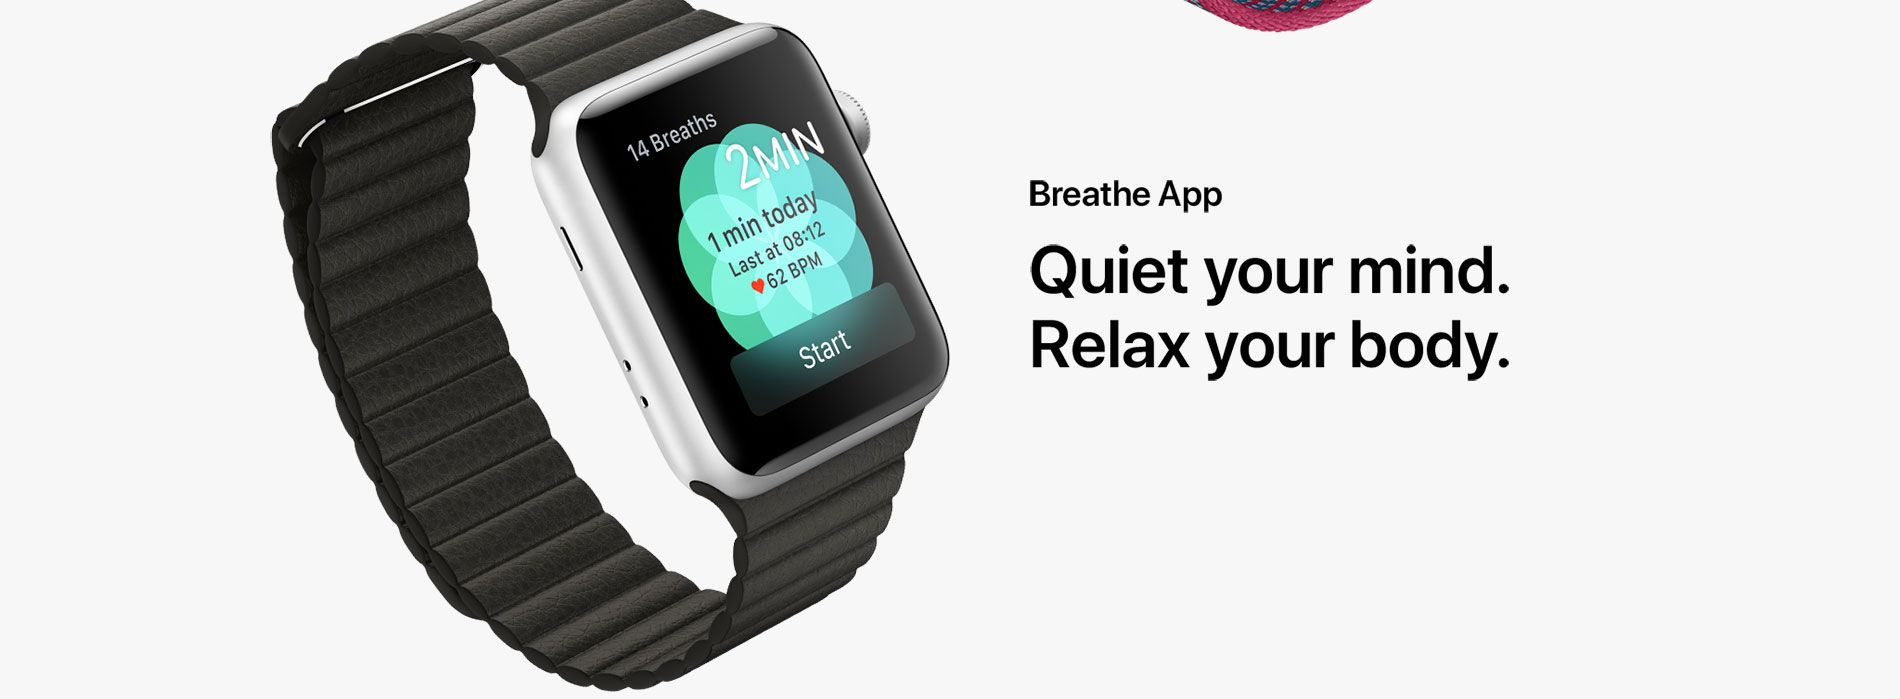 Breathe App - Quiet your mind. Relax your body.